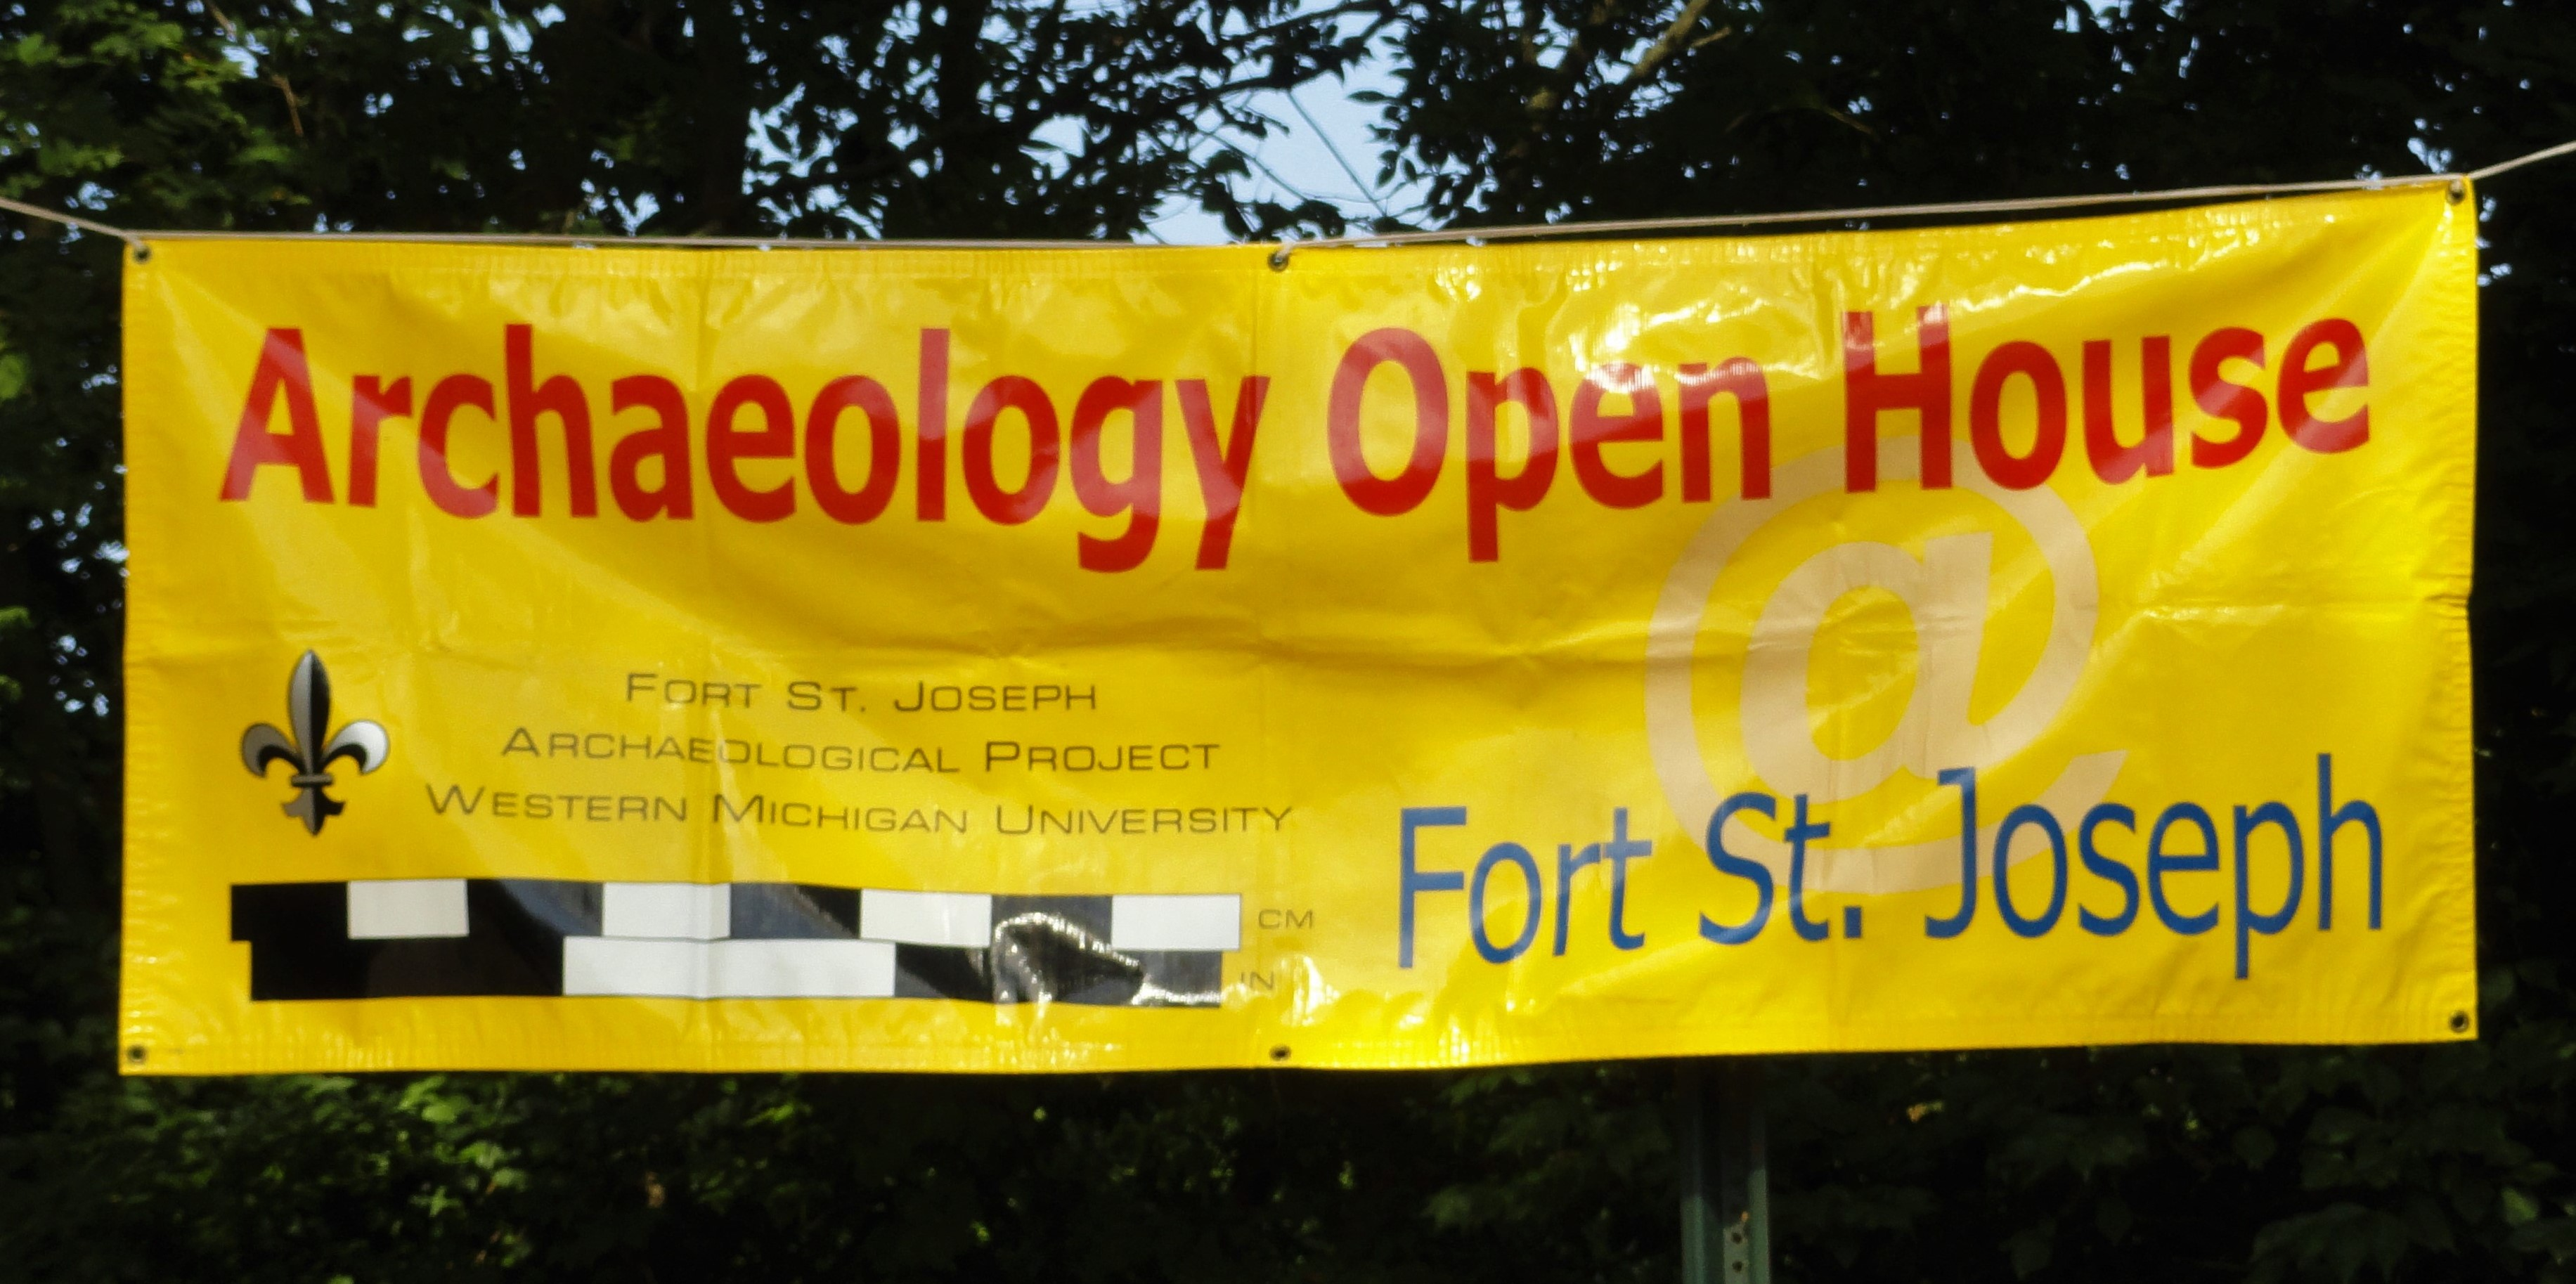 "Banner indicating where the Archeology Open House at Fort St. Joseph is being held. Text reads: ""Archaeology Open House @ Fort St. Joseph. Fort St. Joseph Archaeological Project Western Michigan University."" Image of French is one viewer's left-hand side."""